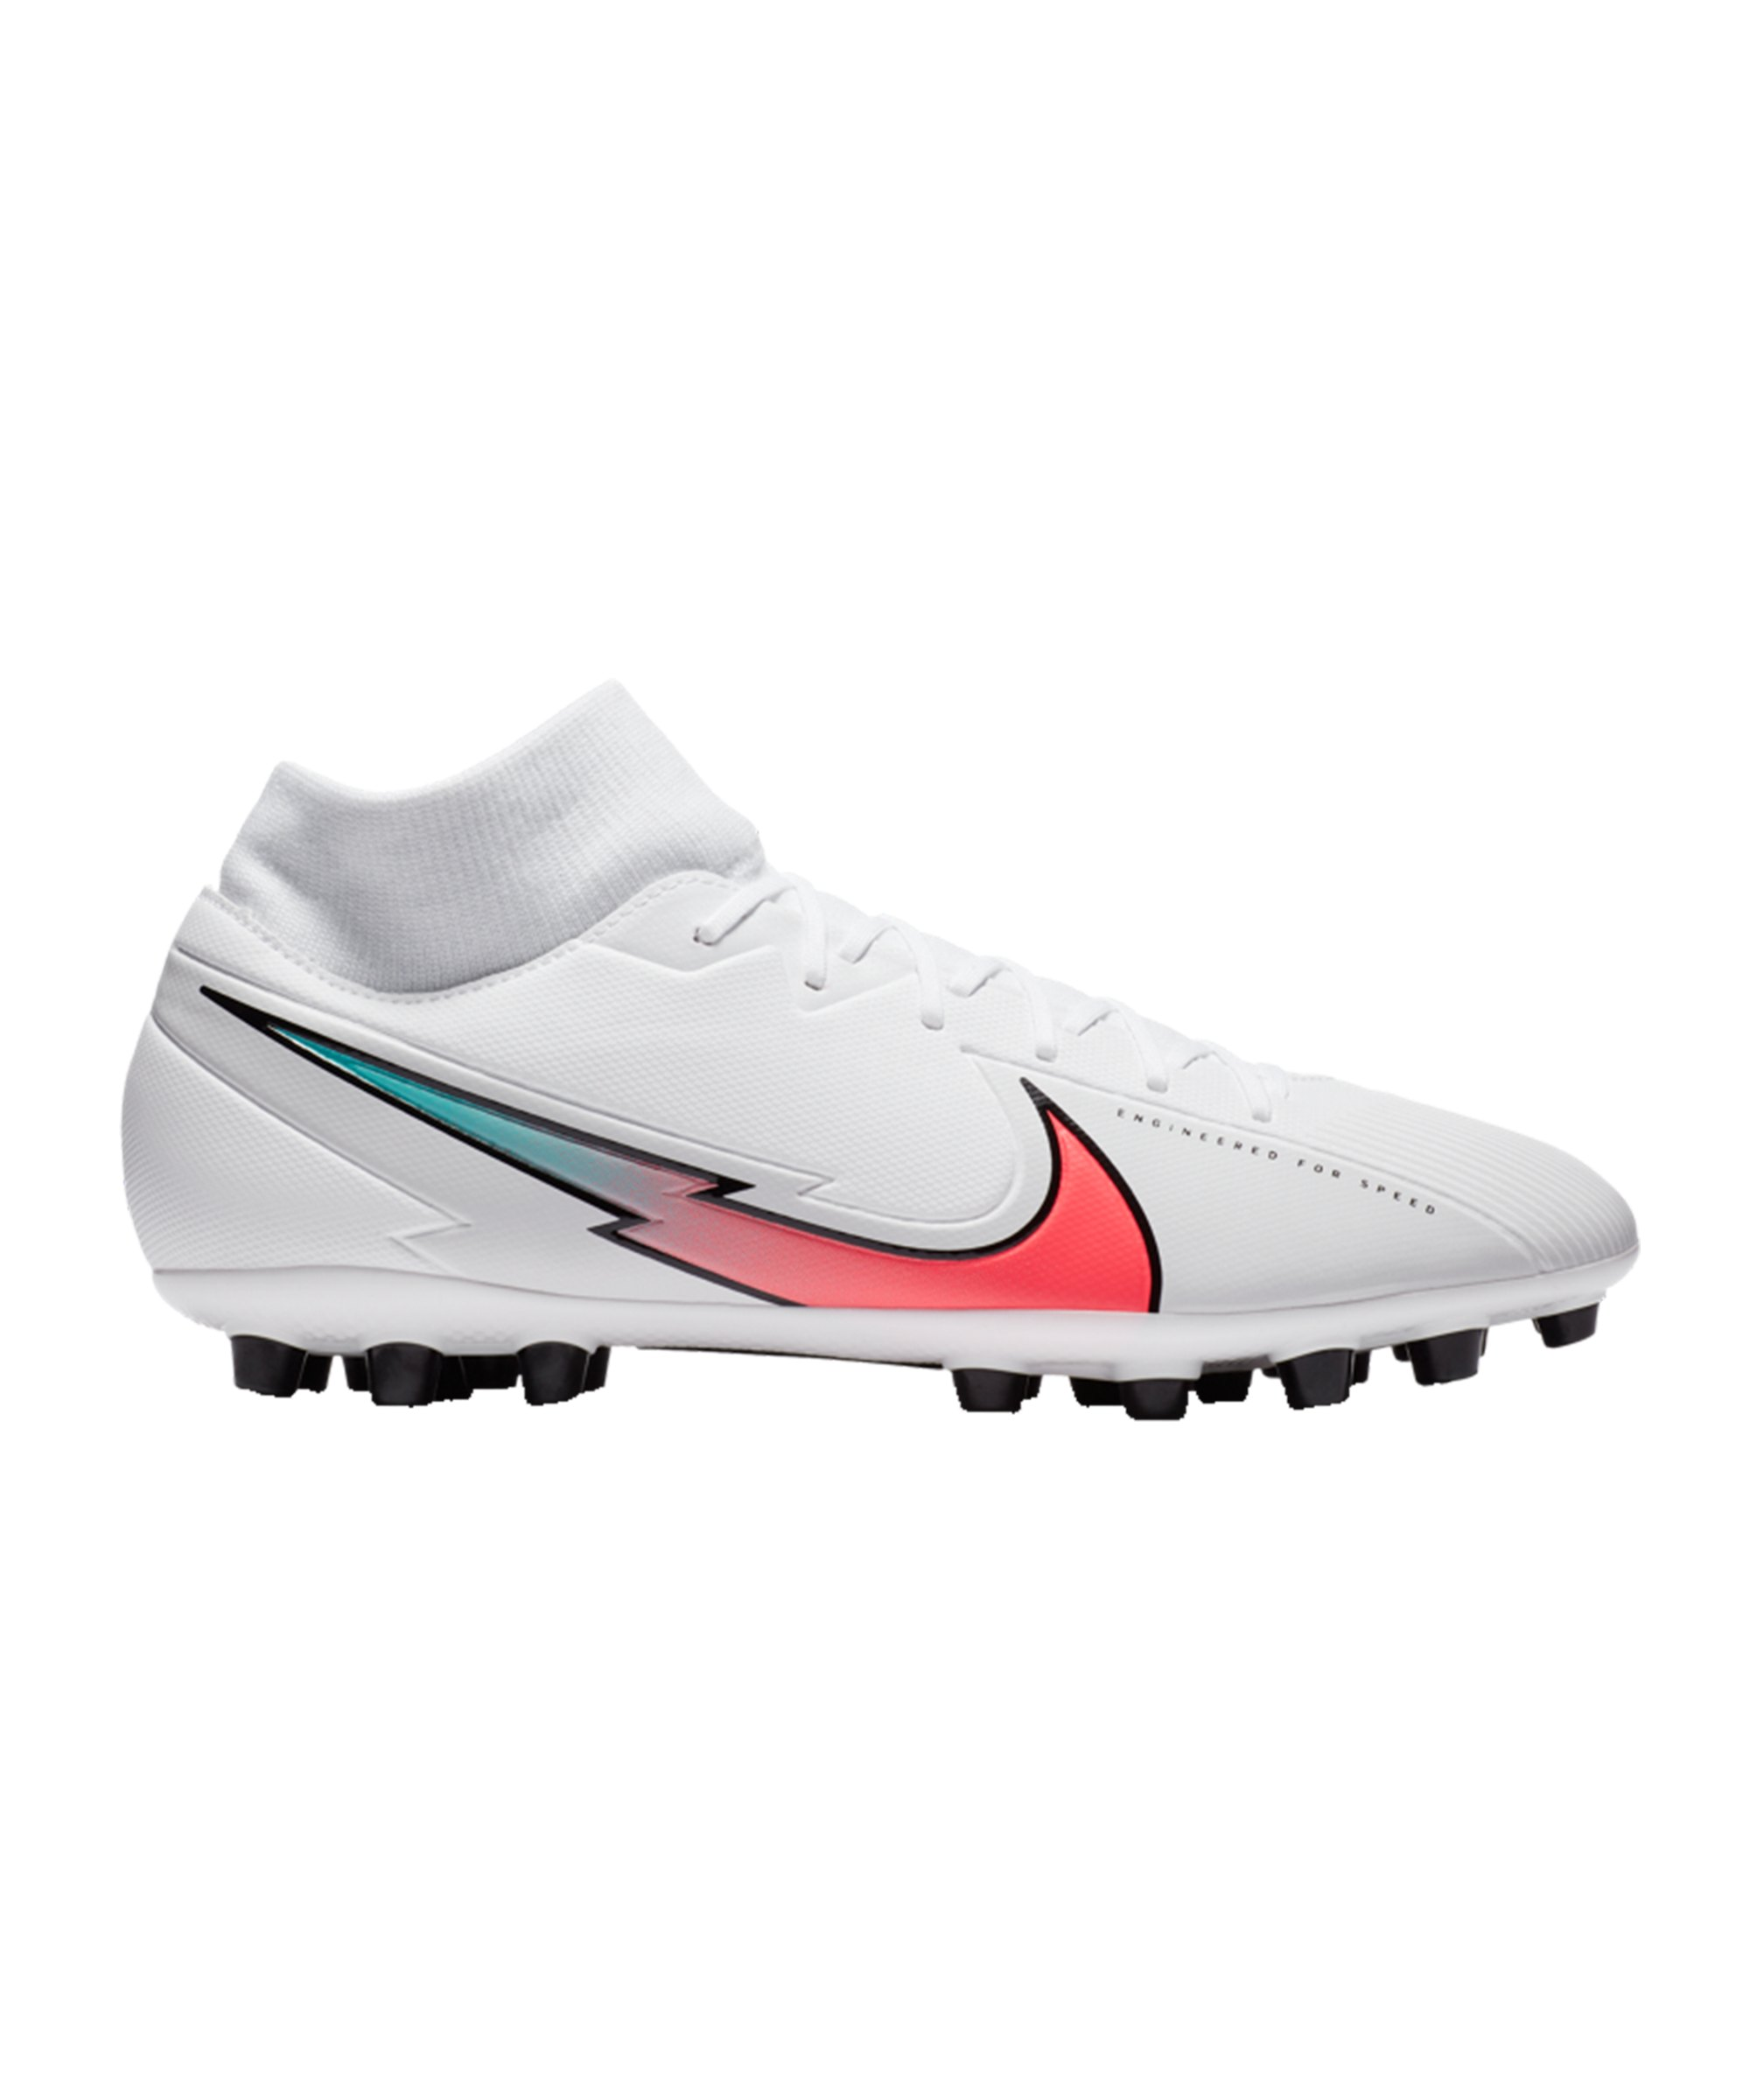 Nike Mercurial Superfly VII Flash Crimson Academy AG Weiss F163 - weiss